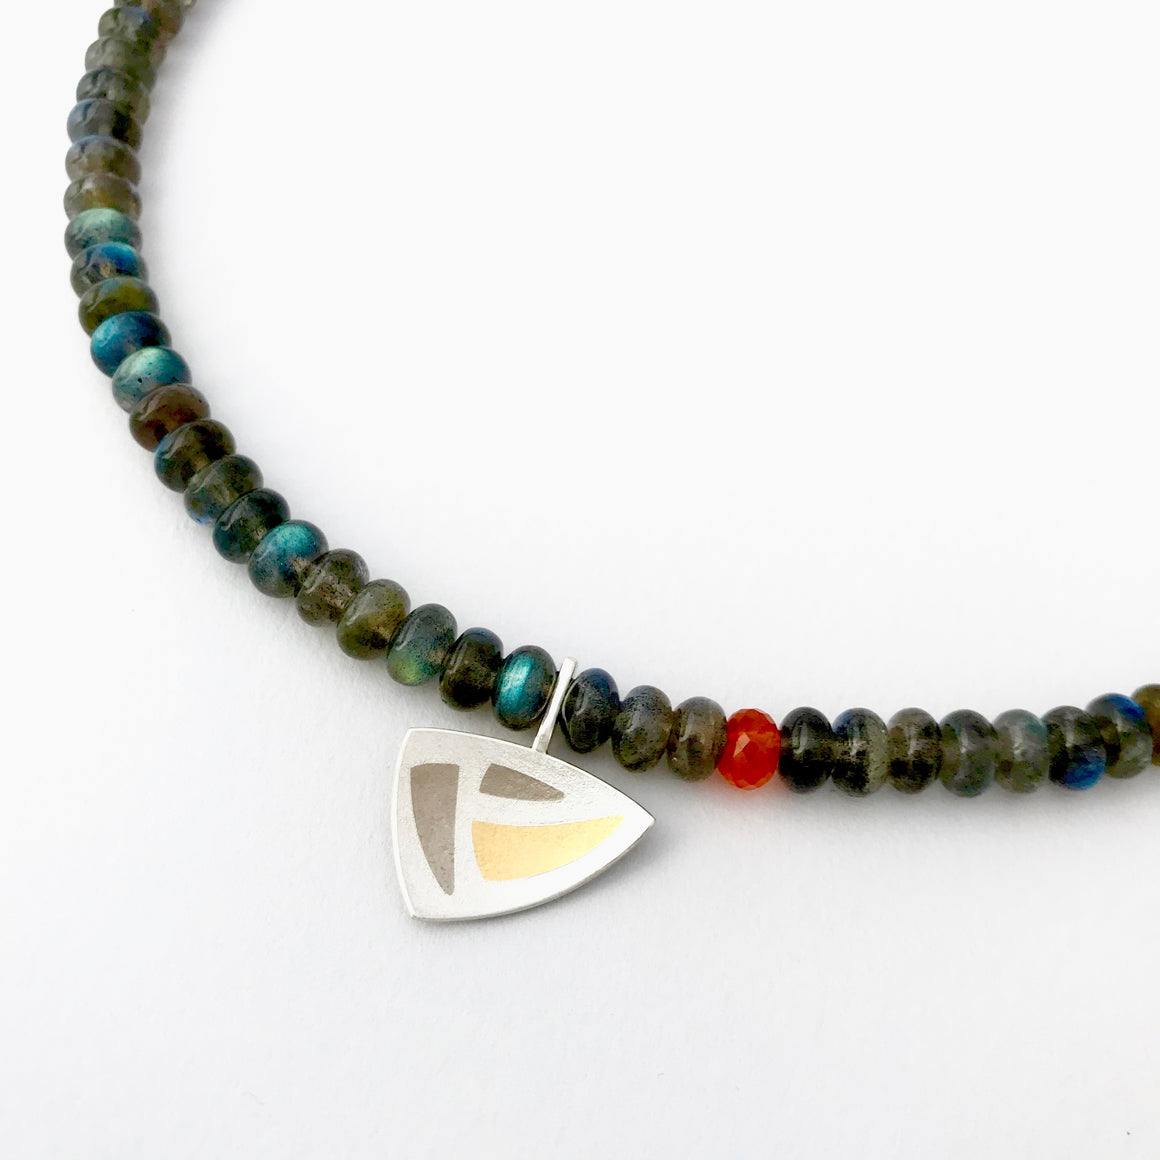 Labradorite Necklace triangular pendant